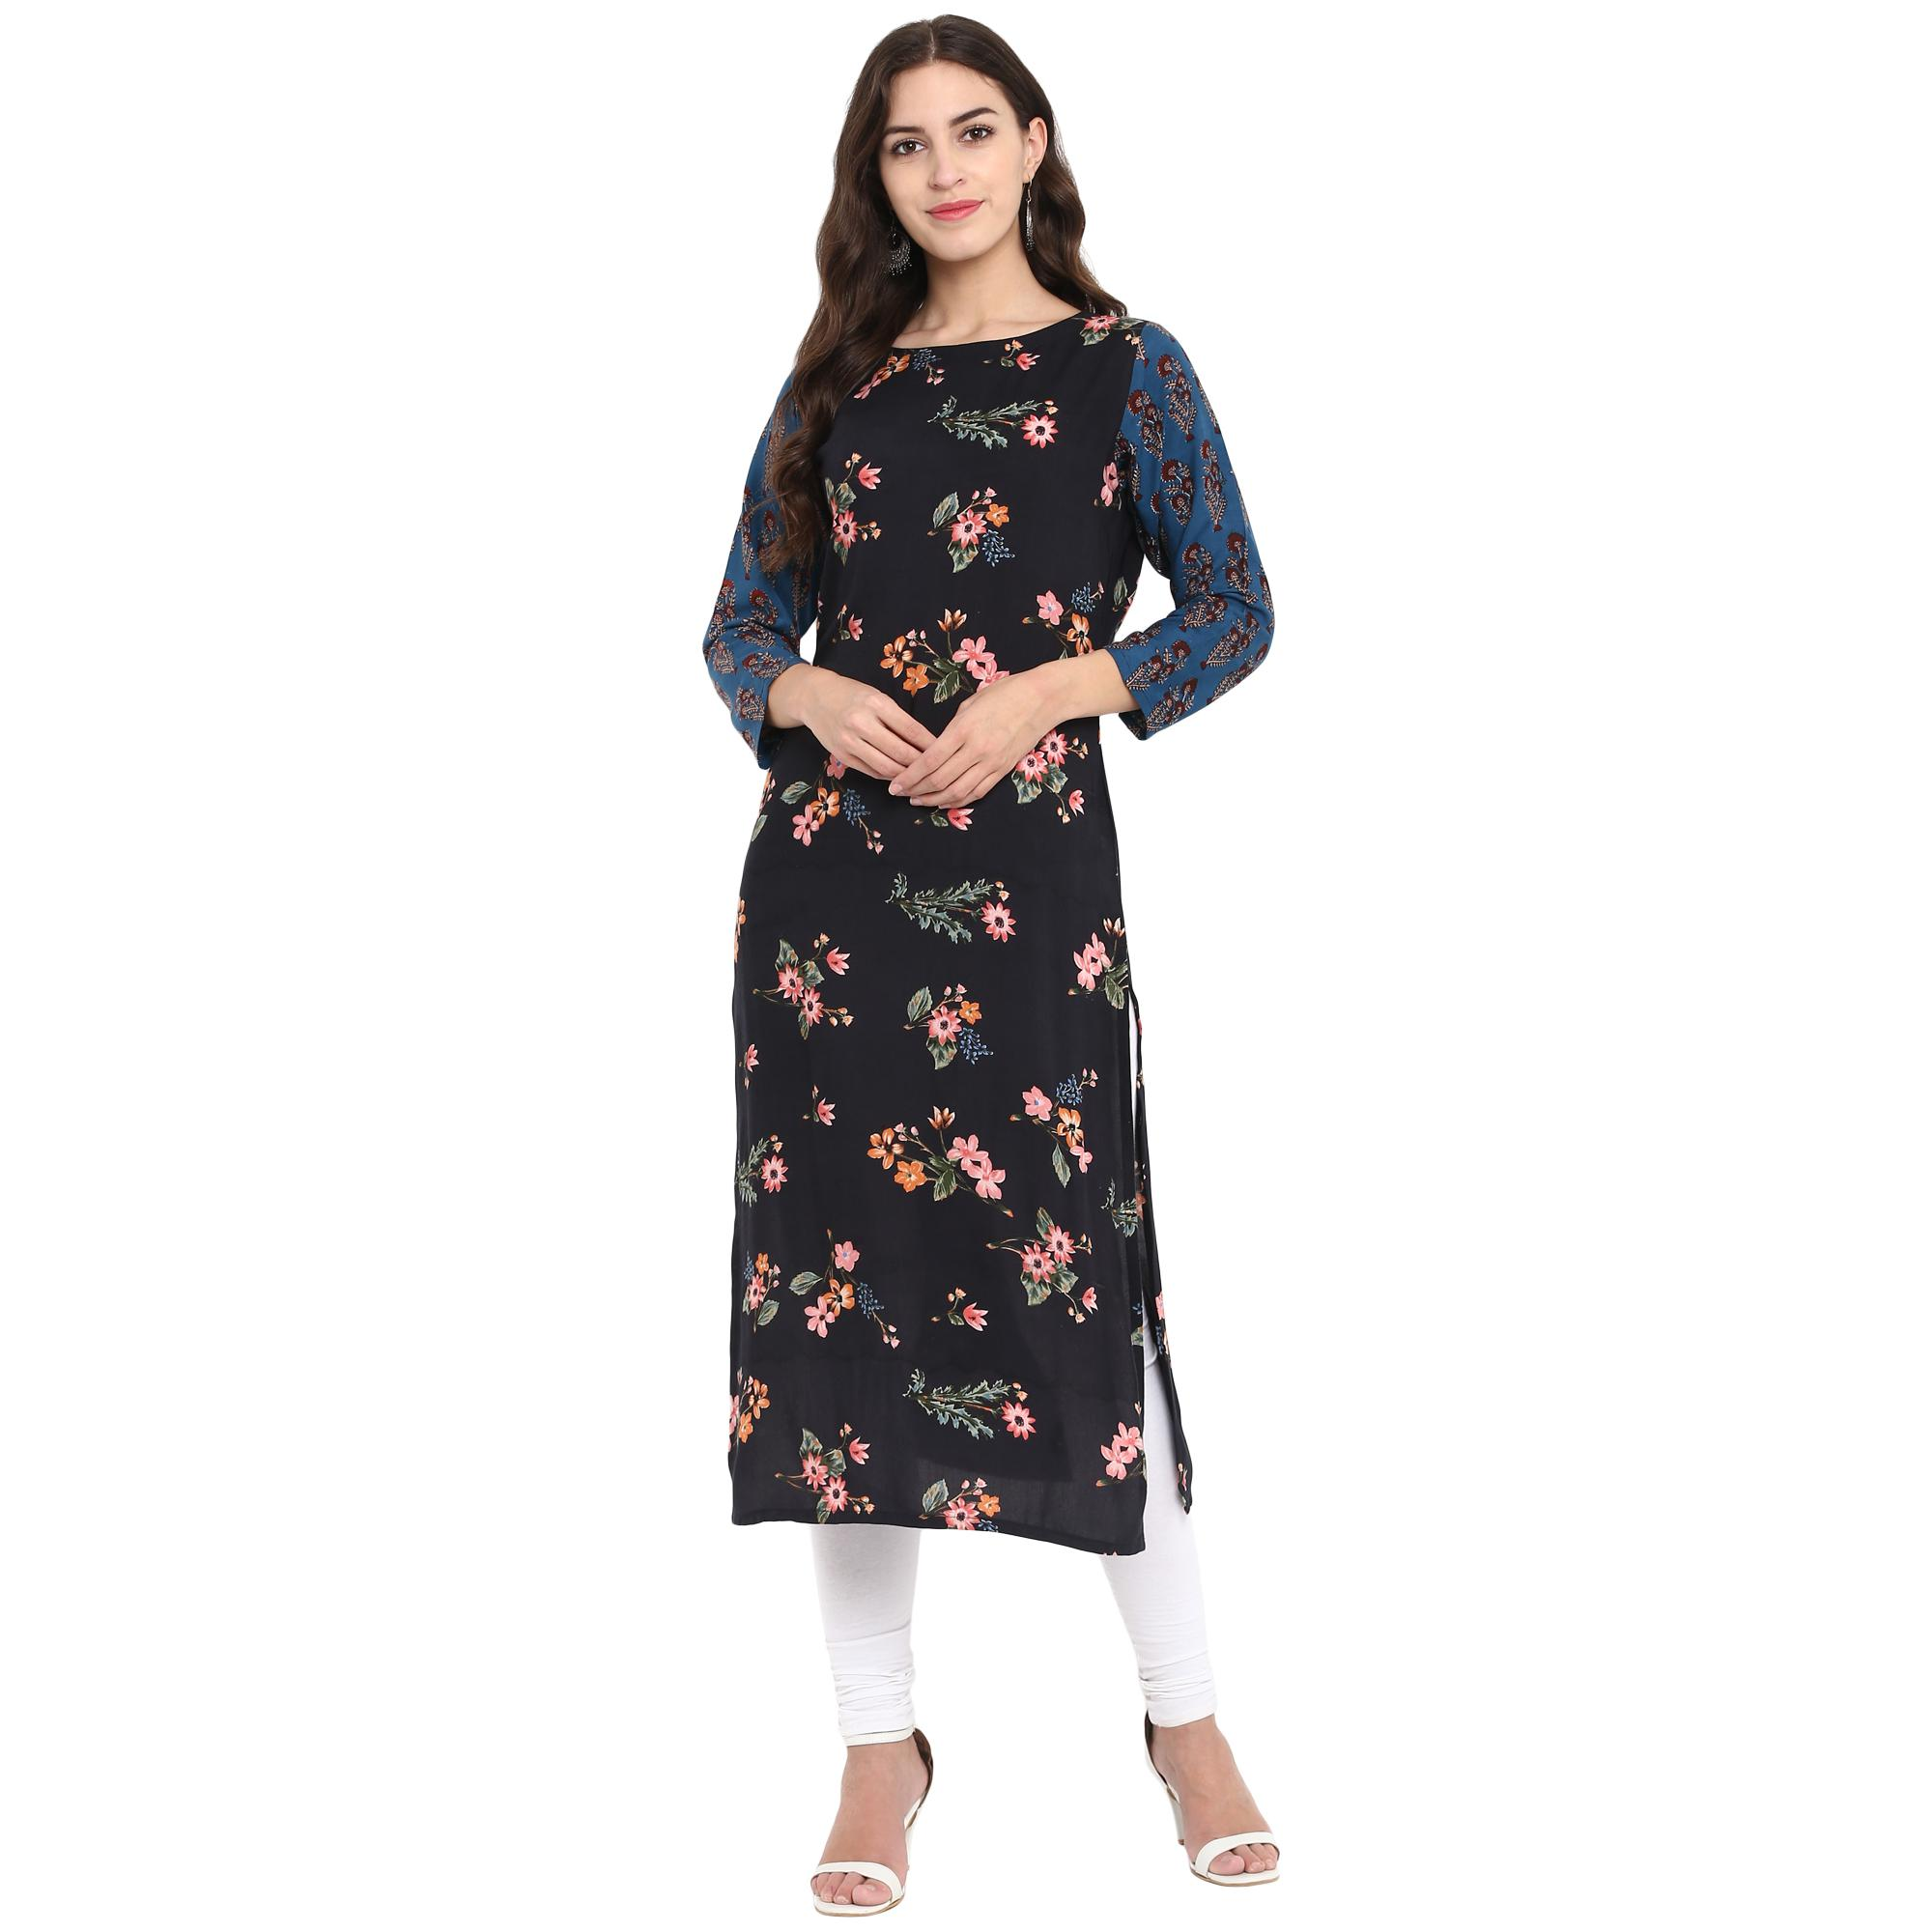 Ahalyaa - Black Colored Casual Digital Printed Rayon Kurti